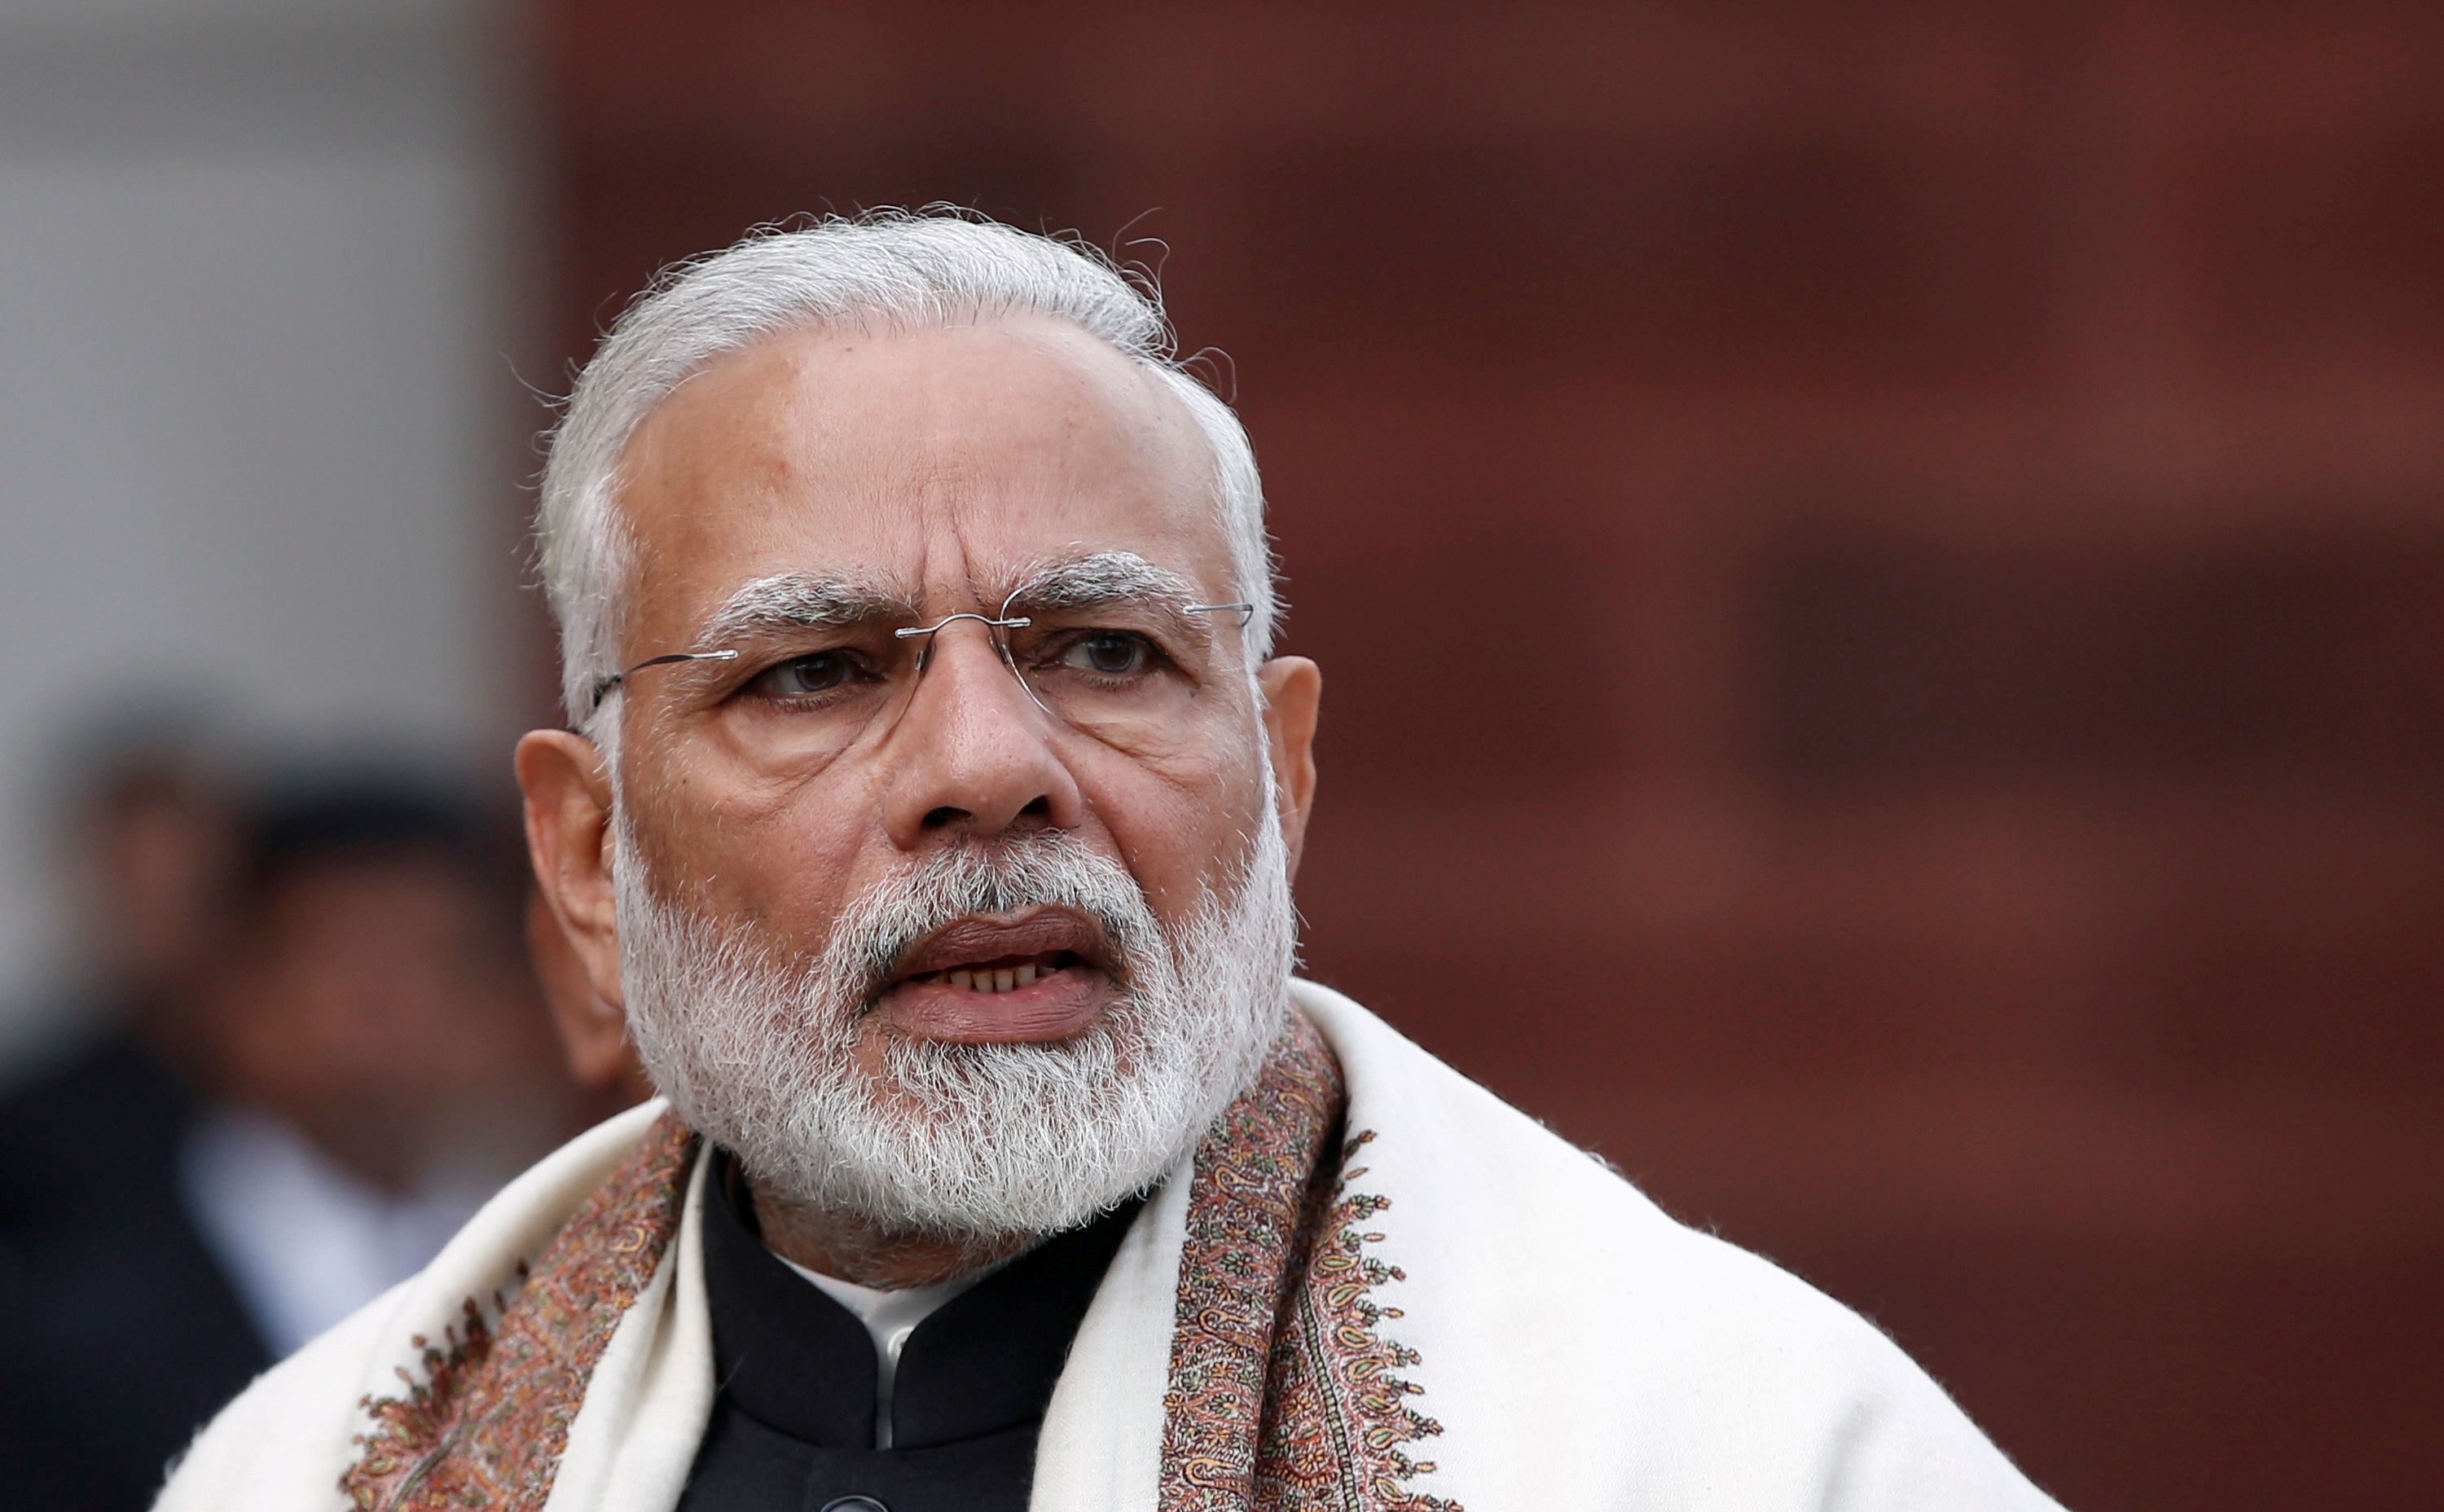 India's Prime Minister Narendra Modi speaks with the media inside the parliament premises on the first day of the budget session, in New Delhi, India, January 29, 2018.